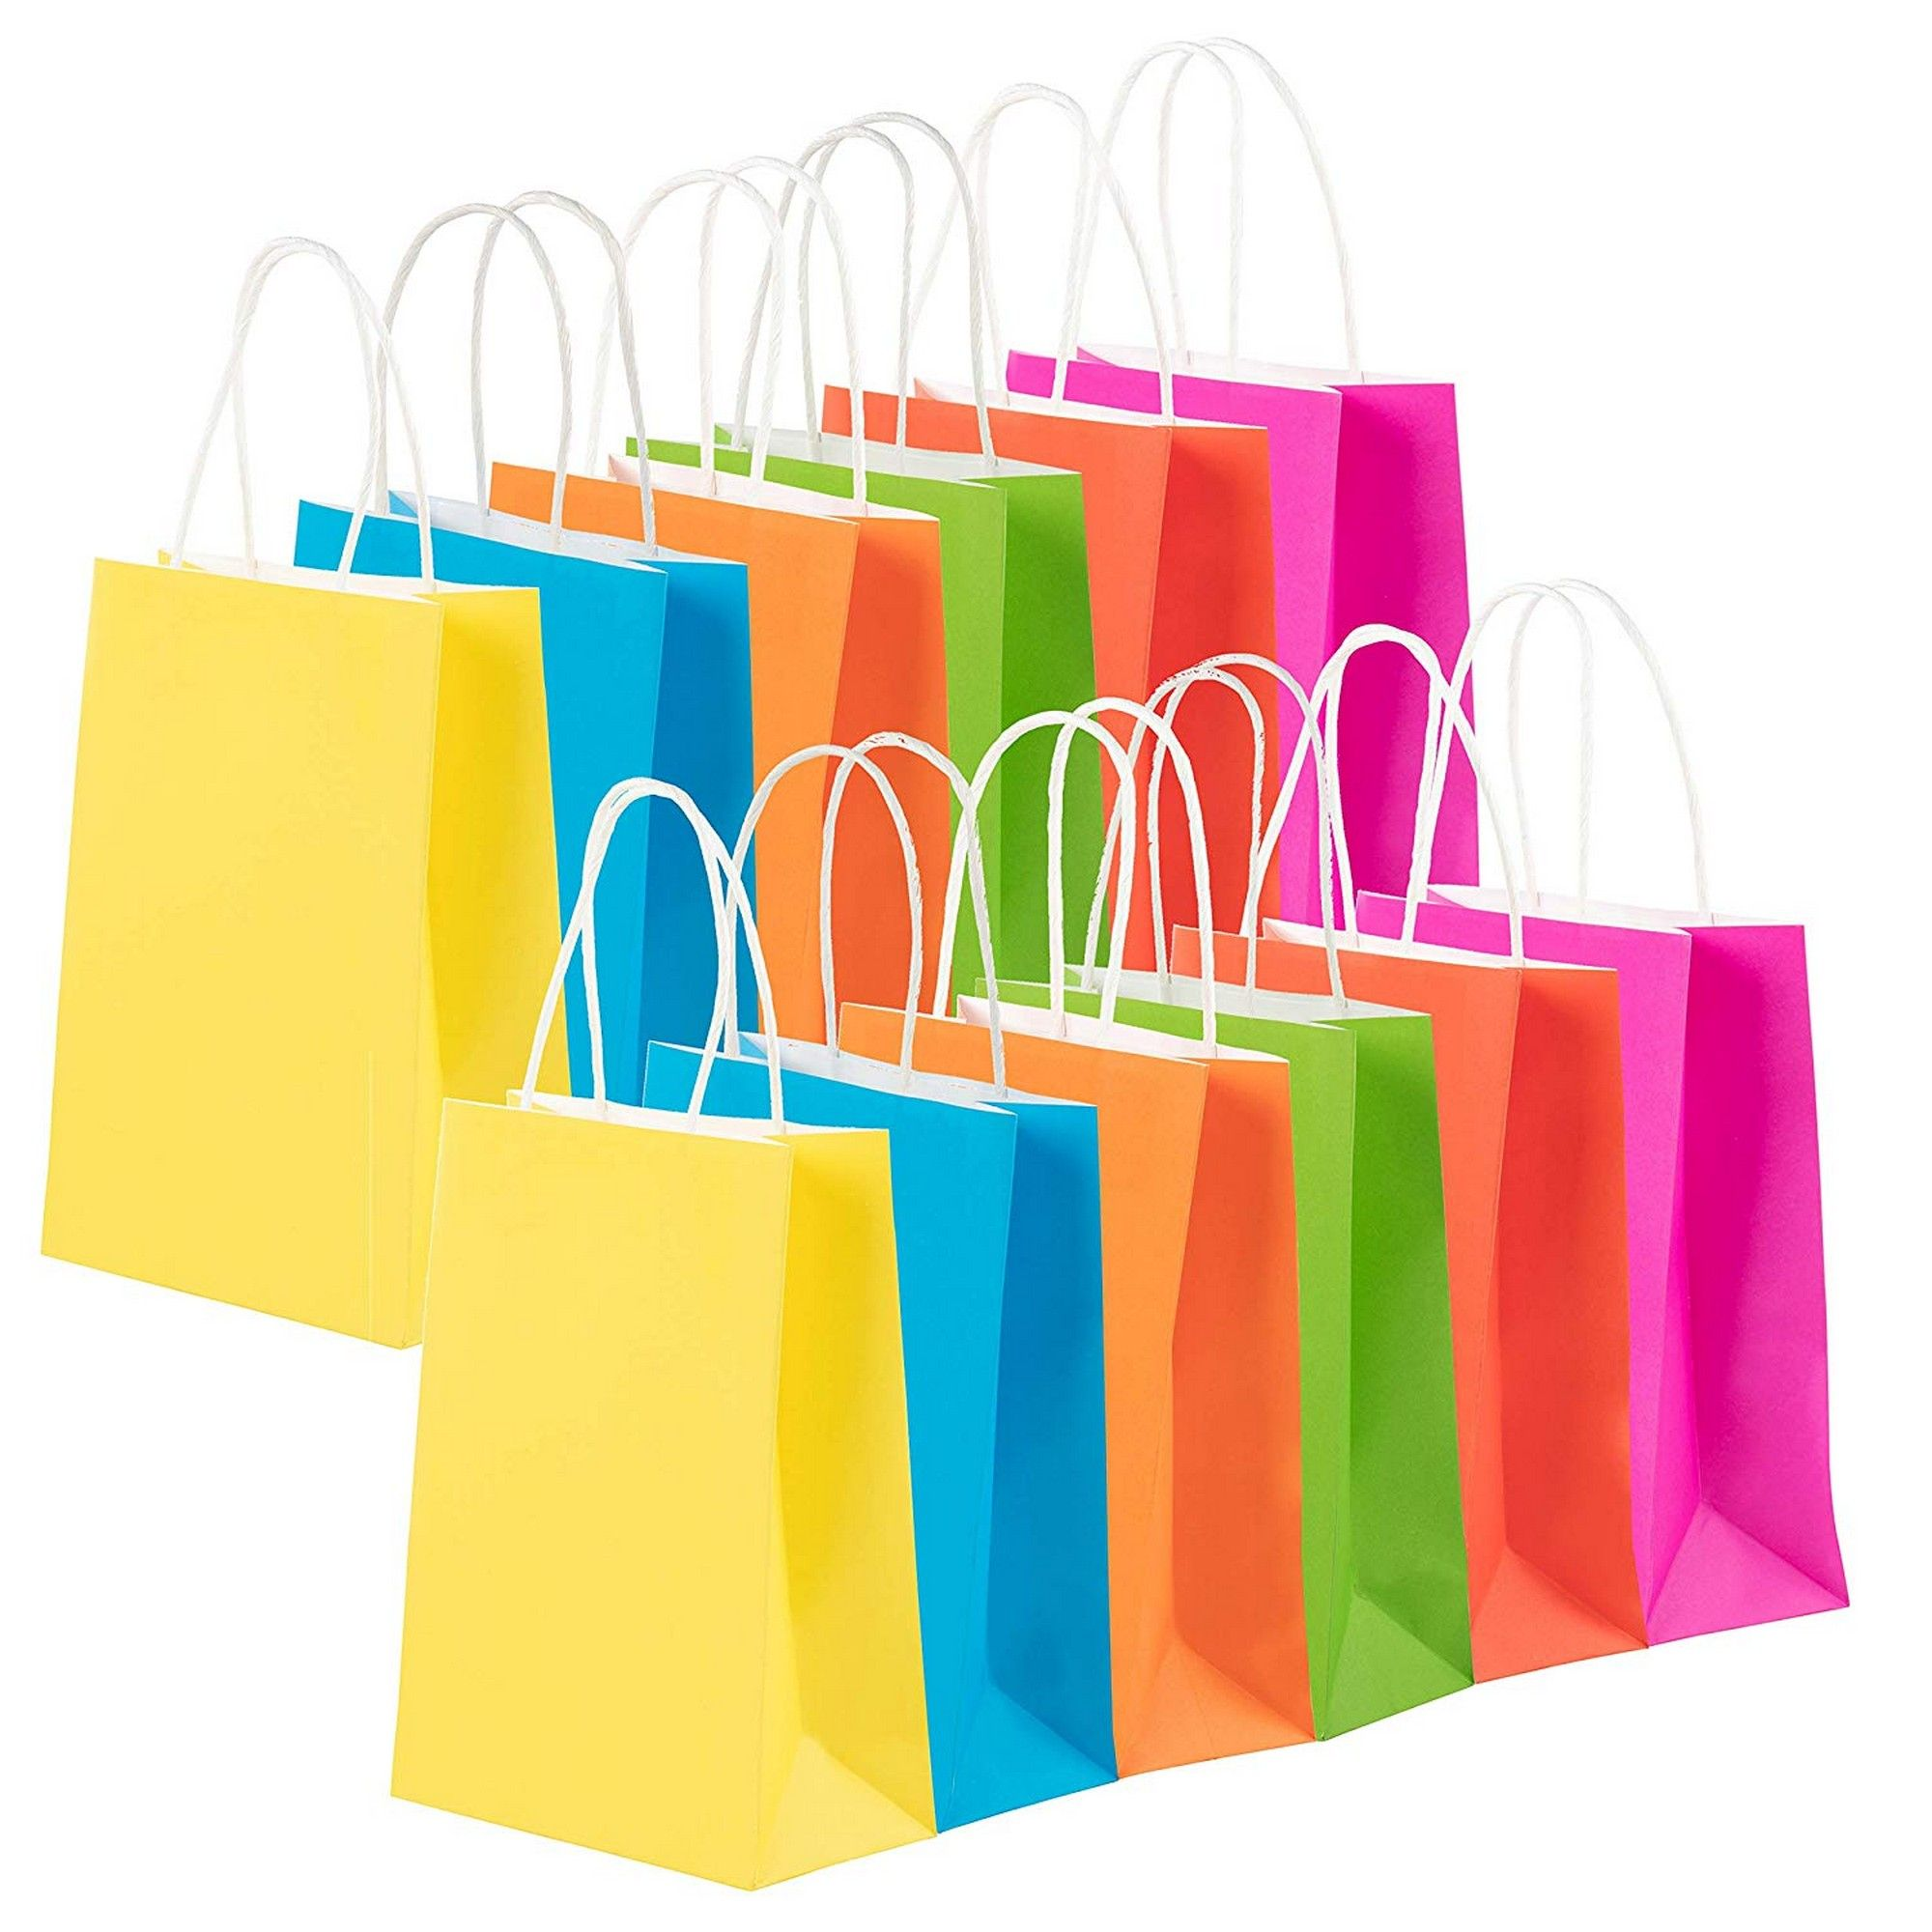 24 Pack Gift Bags Neon Colored Bulk Gift Bags With